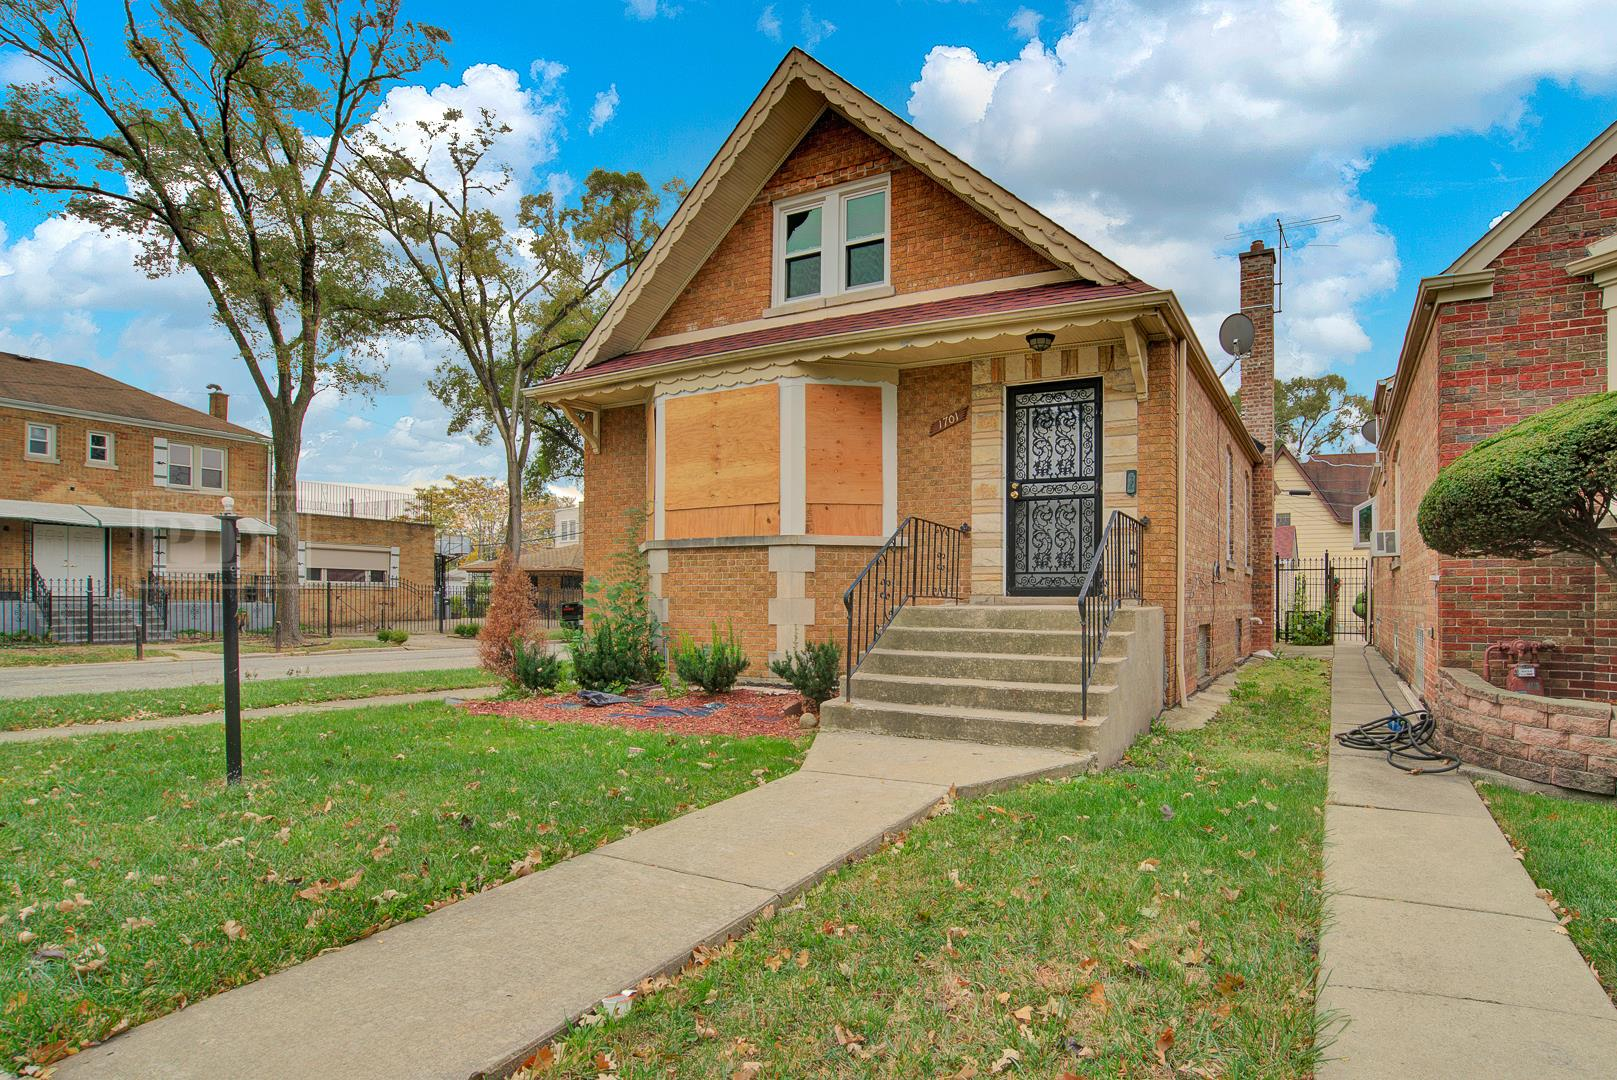 1701 W 85th Street, Chicago, IL 60620 - #: 10897002